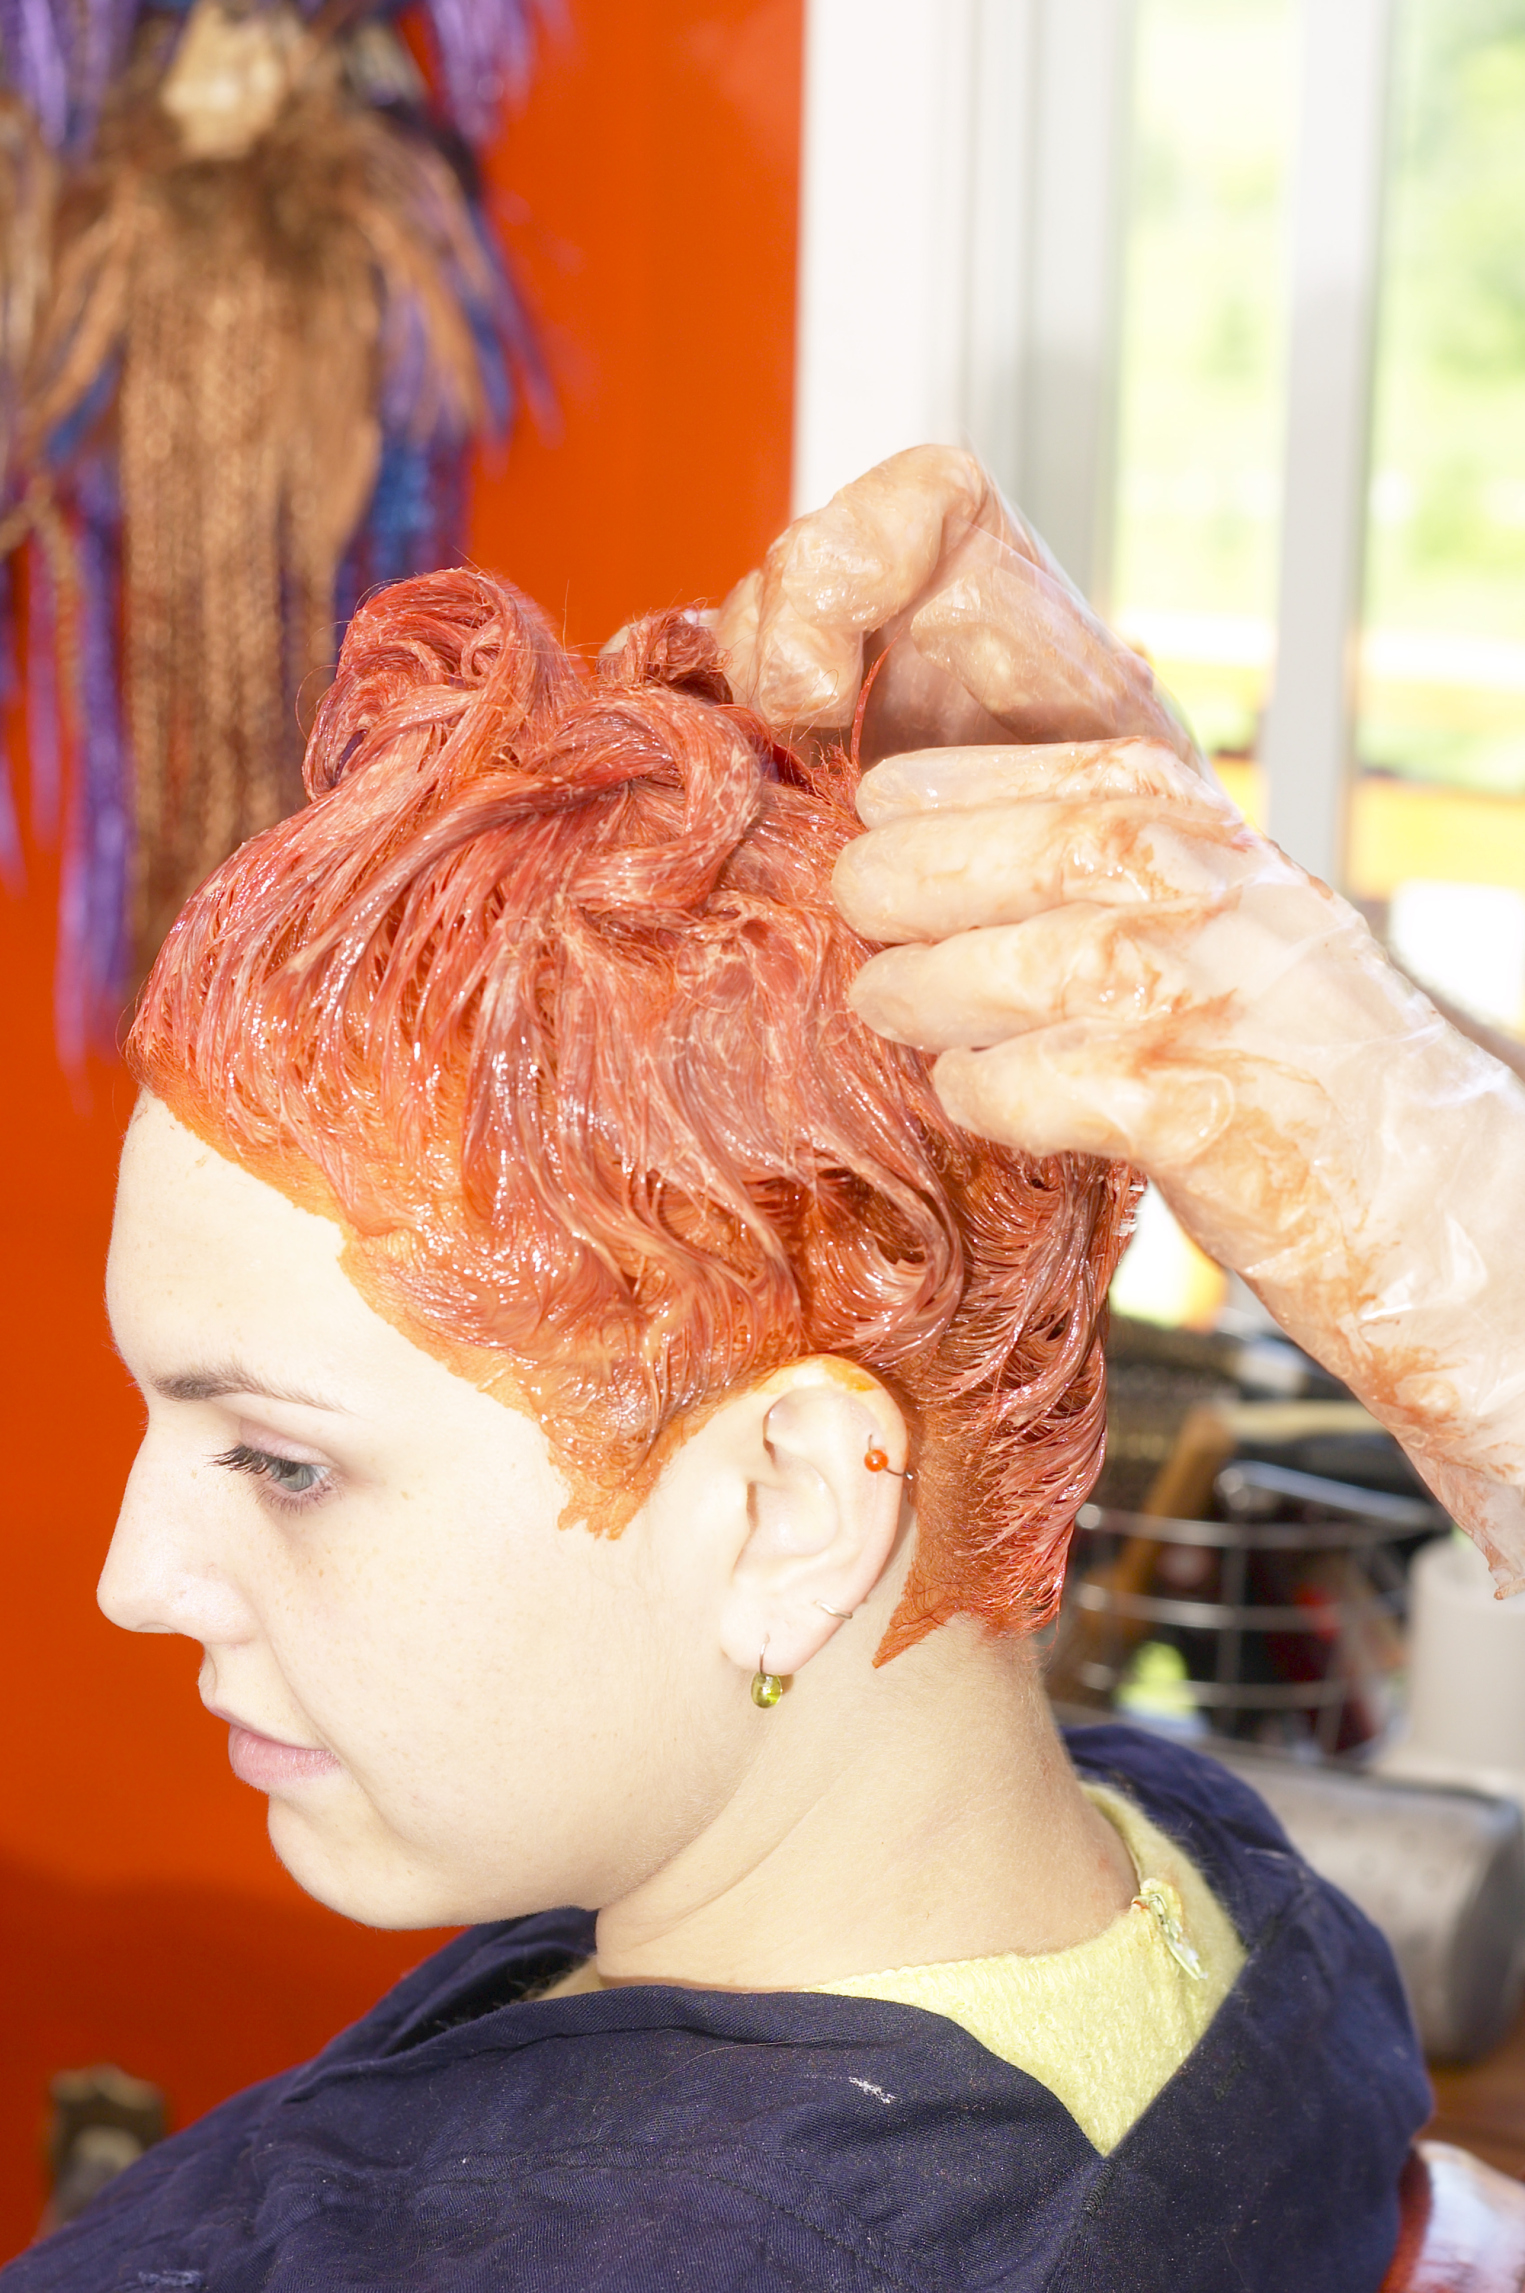 Anecdotal evidence suggests vitamin C tablets crushed in shampoo may remove hair dye.